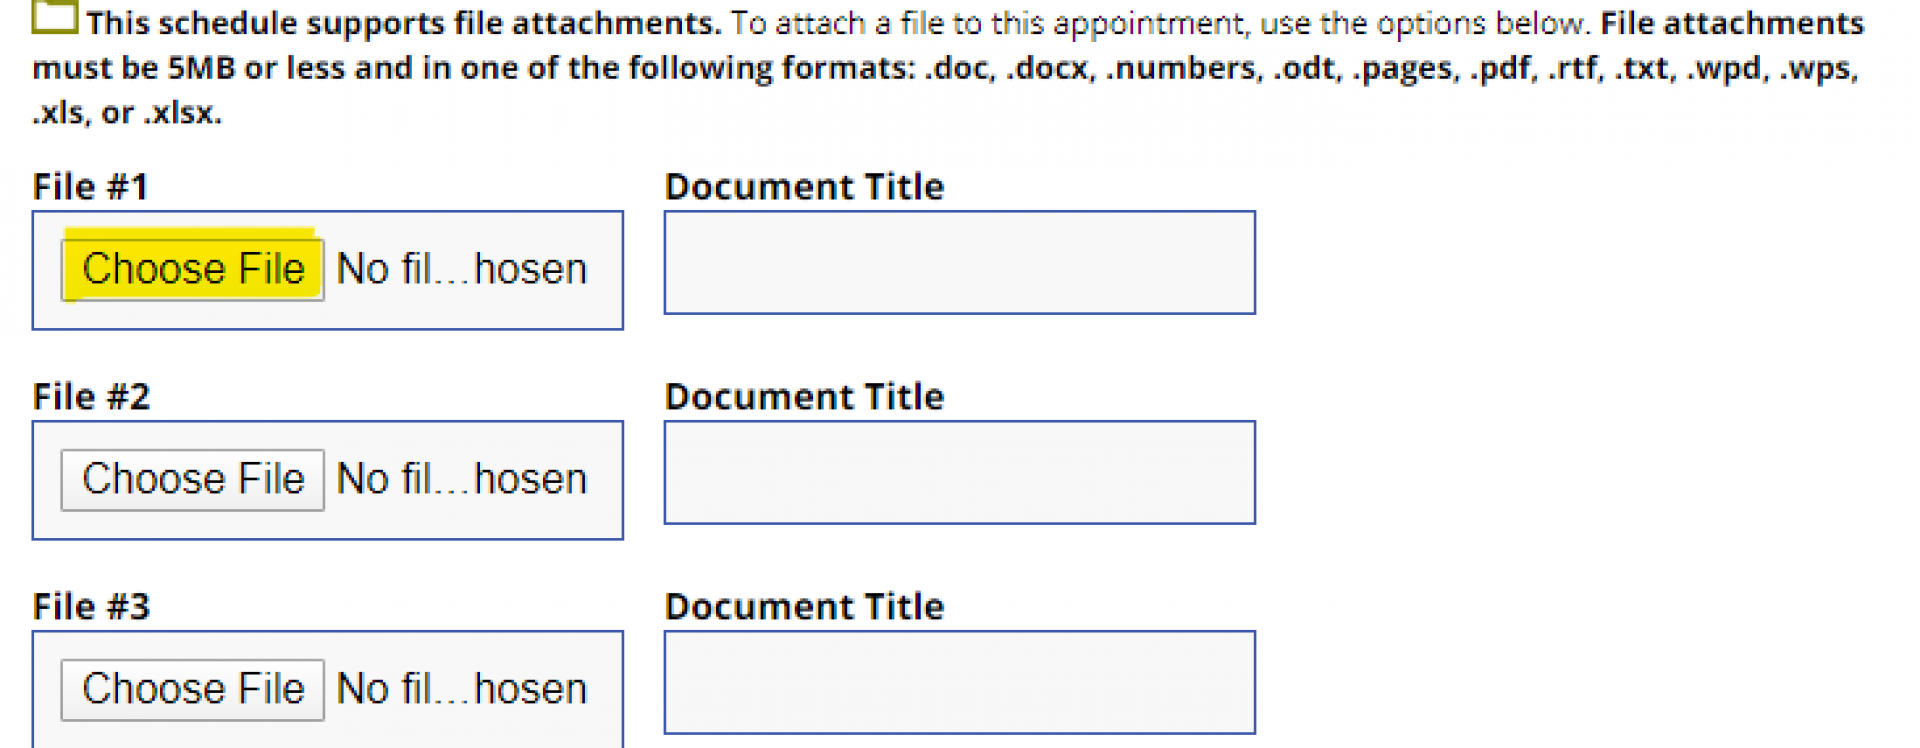 An image of where to upload files in the OWL appointment form.